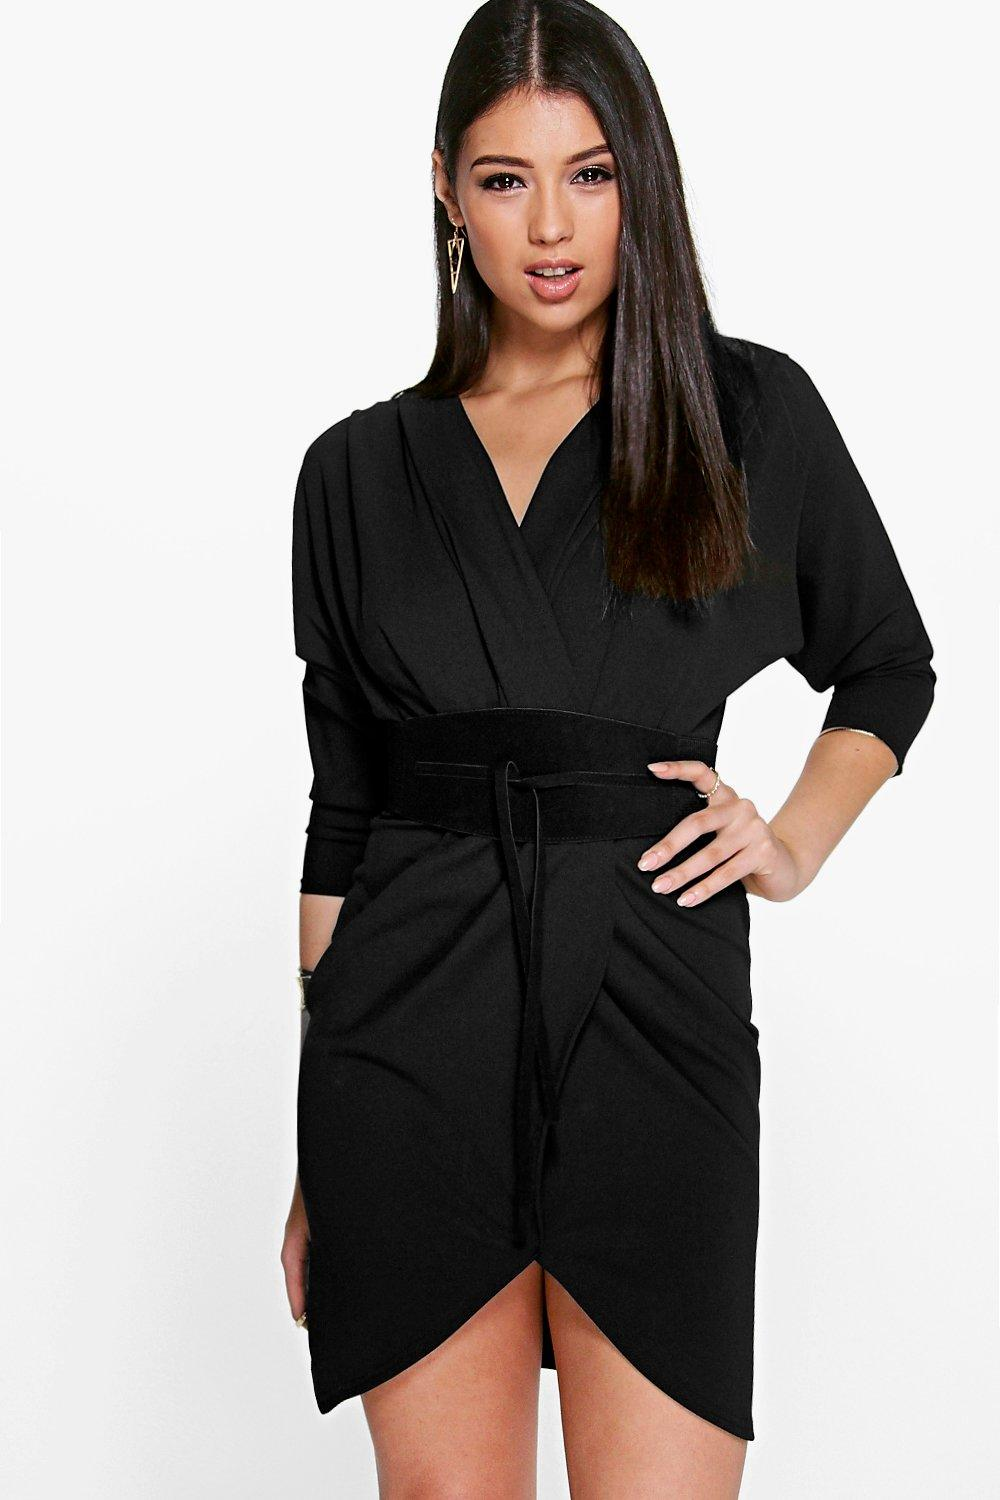 Mulan Suedette Obi belt Wrap Dress